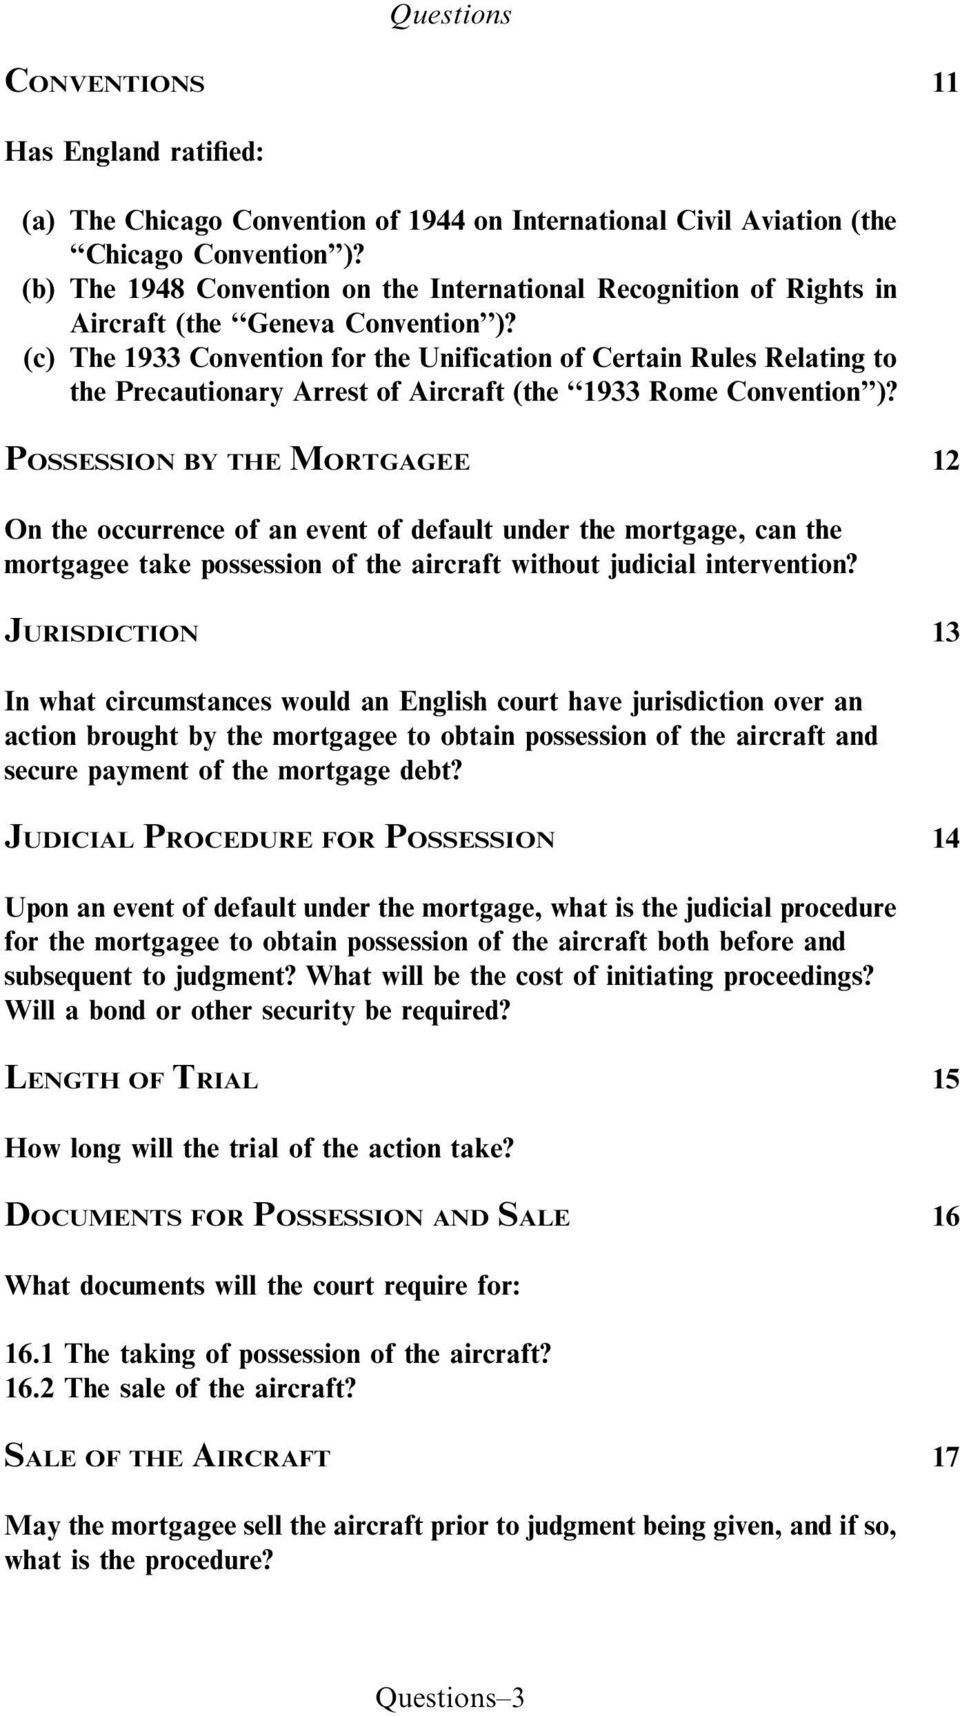 (c) The 1933 Convention for the Unification of Certain Rules Relating to the Precautionary Arrest of Aircraft (the 1933 Rome Convention )?